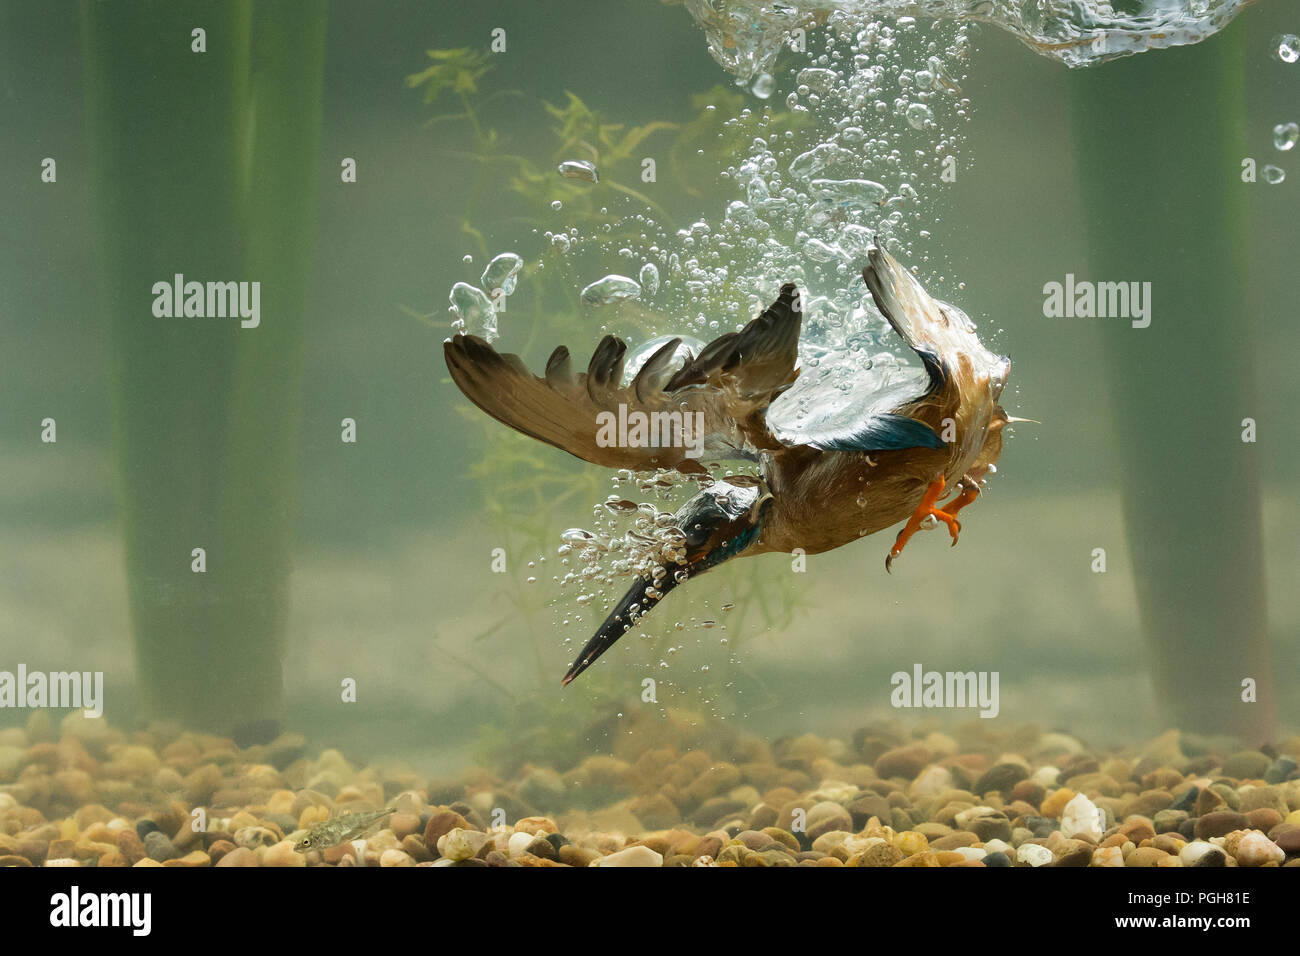 Kingfisher (Alcedo atthis) diving underwater - Stock Image